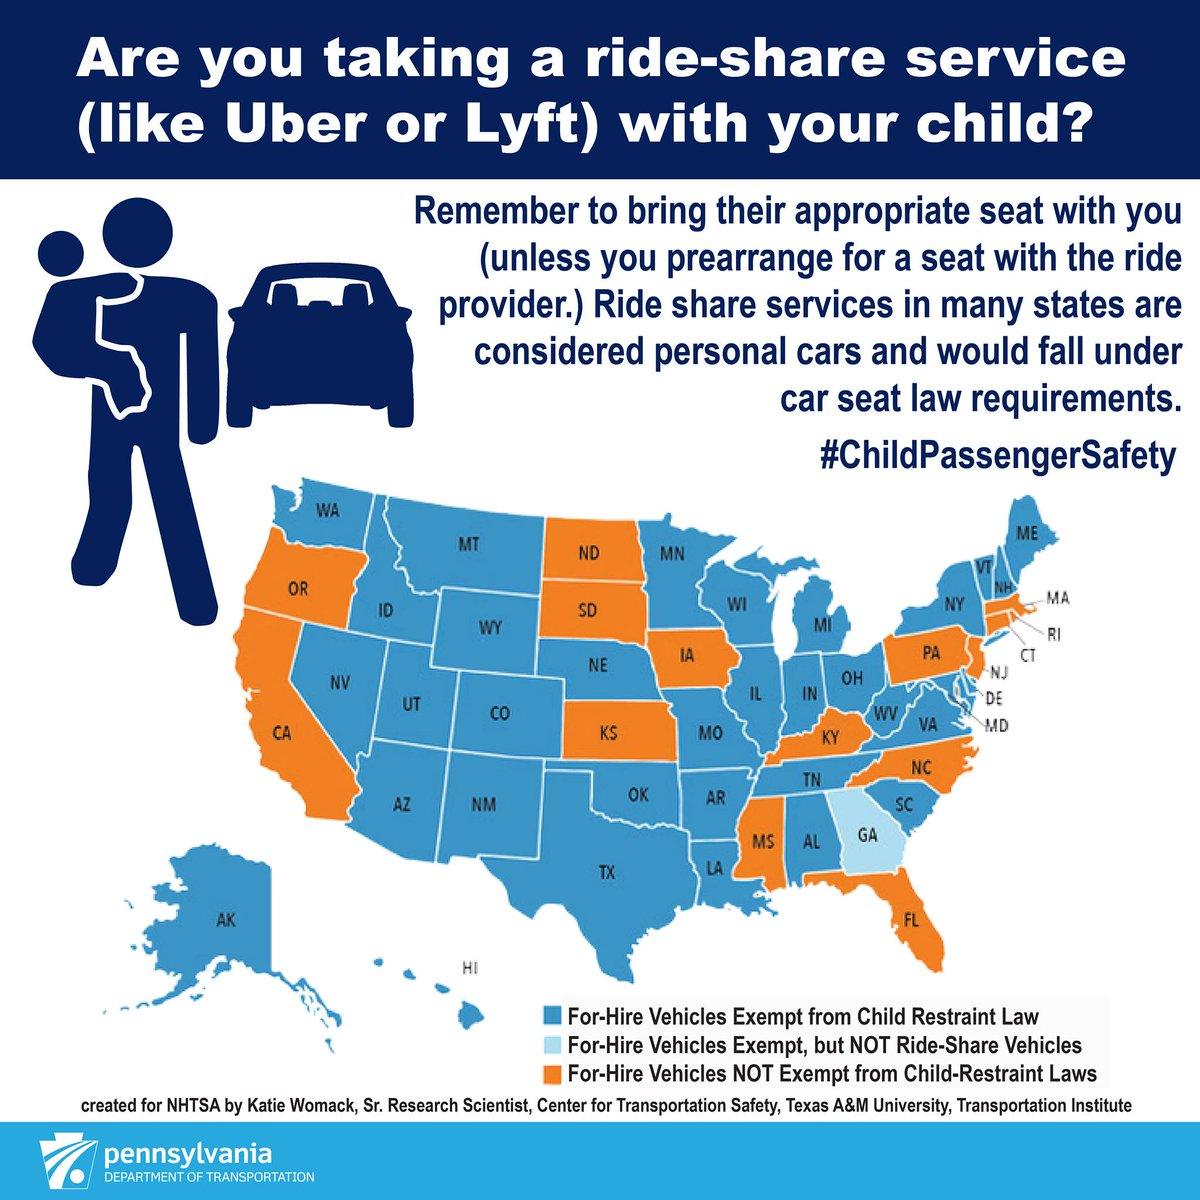 Did you know if you use a ride-share service with your child in PA you are required to have an appropriate car seat with you for them to use? See the chart below for requirements for each state. #childsafety #highwaysafetynetwork